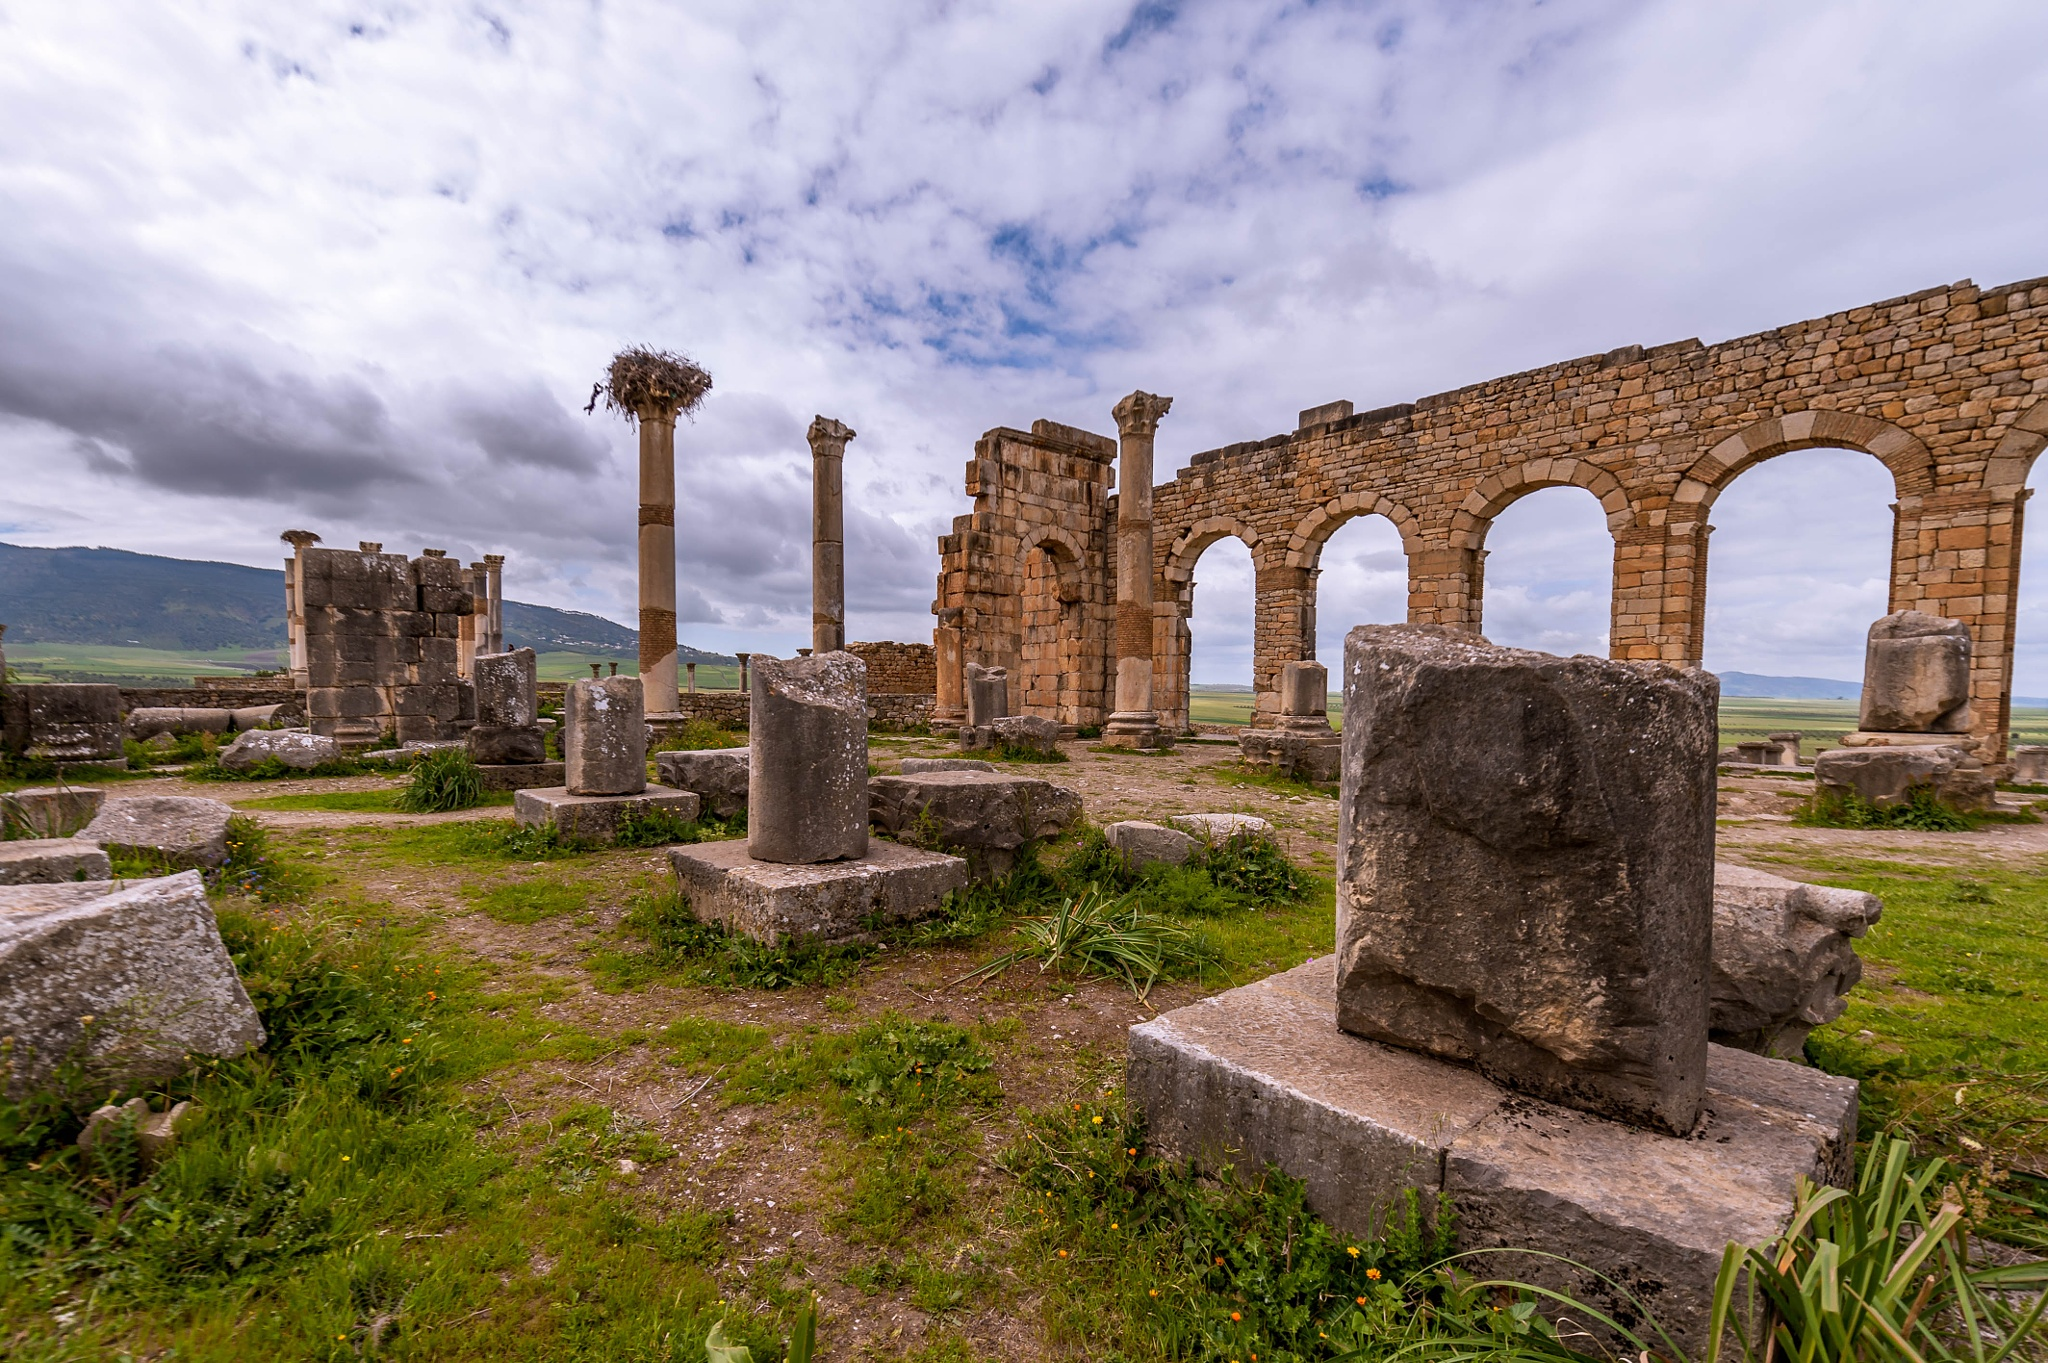 Site Archéologique Volubilis  by MohamedBachirBennani